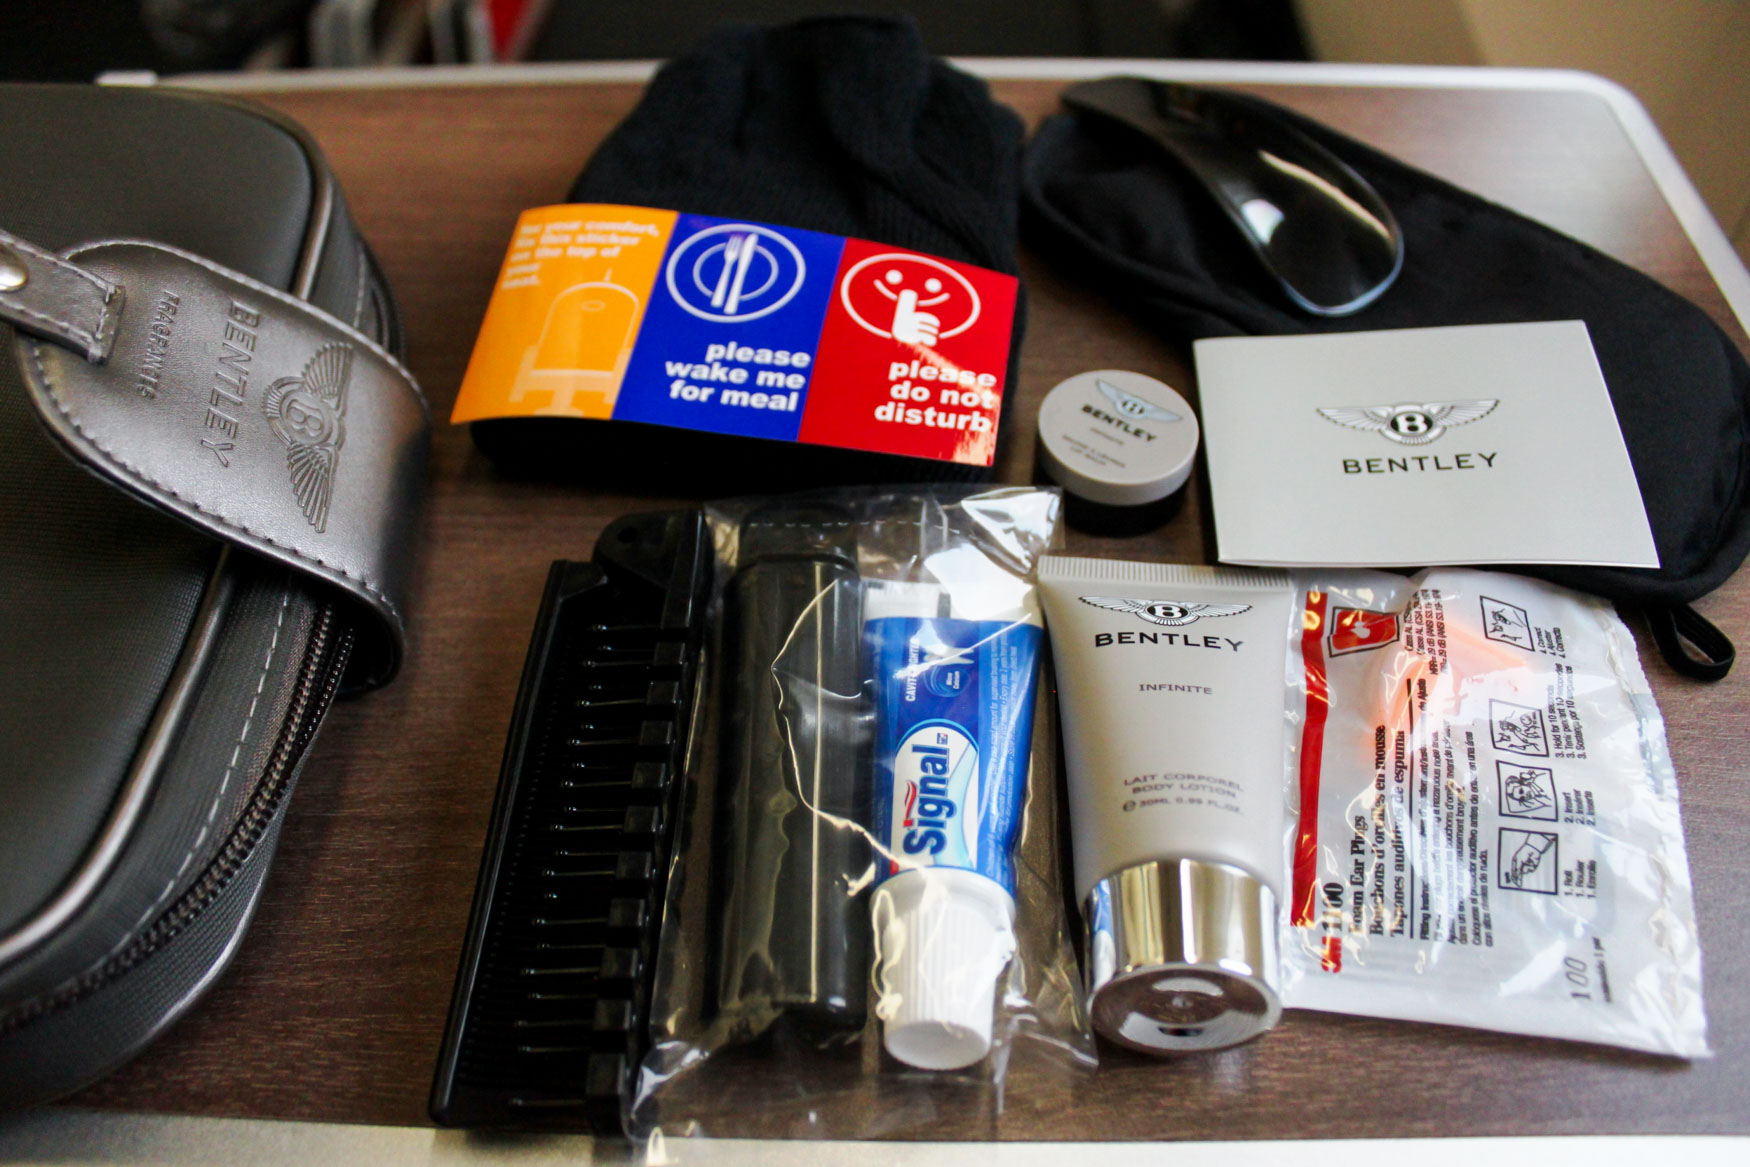 Bentley Amenity Kit Turkish Airlines